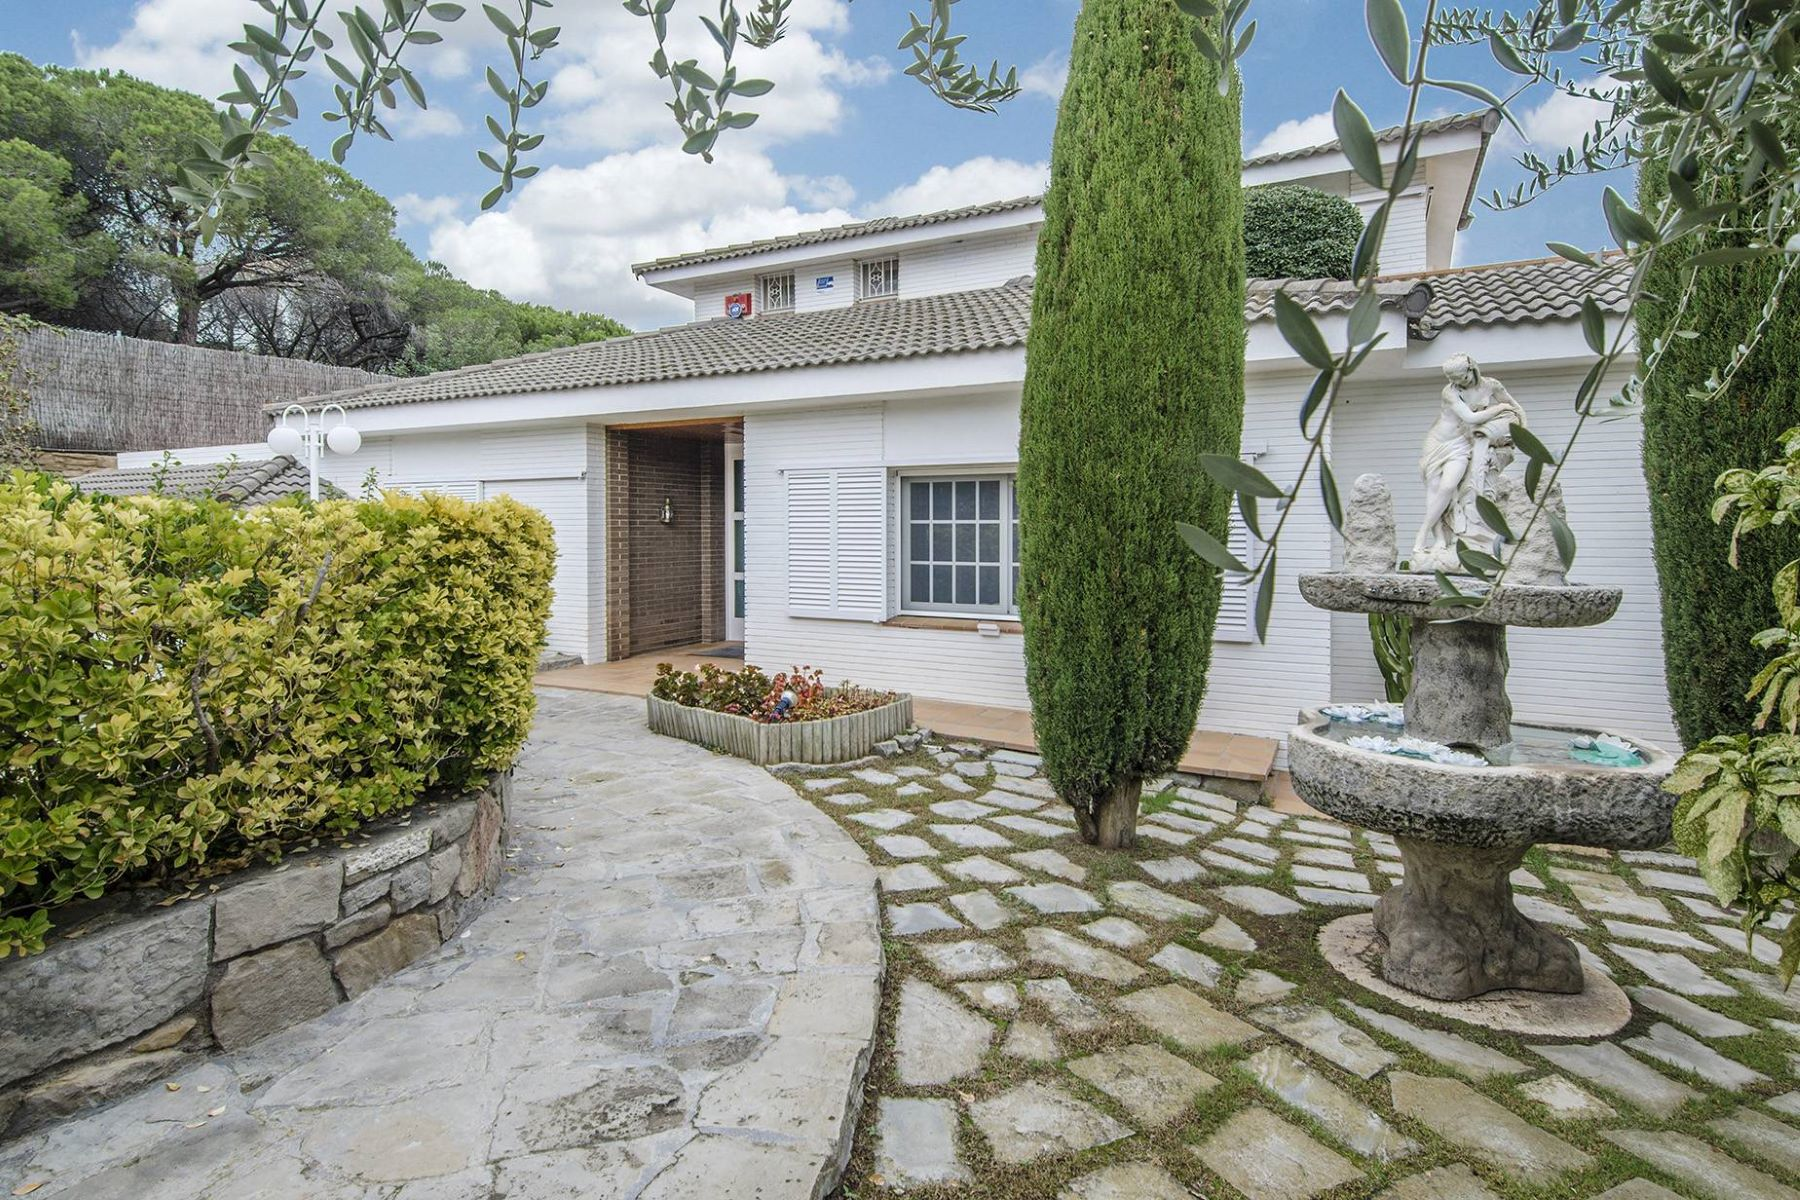 Single Family Home for Sale at A Luxury in Alella Next to the City Center Alella, Barcelona, 08328 Spain